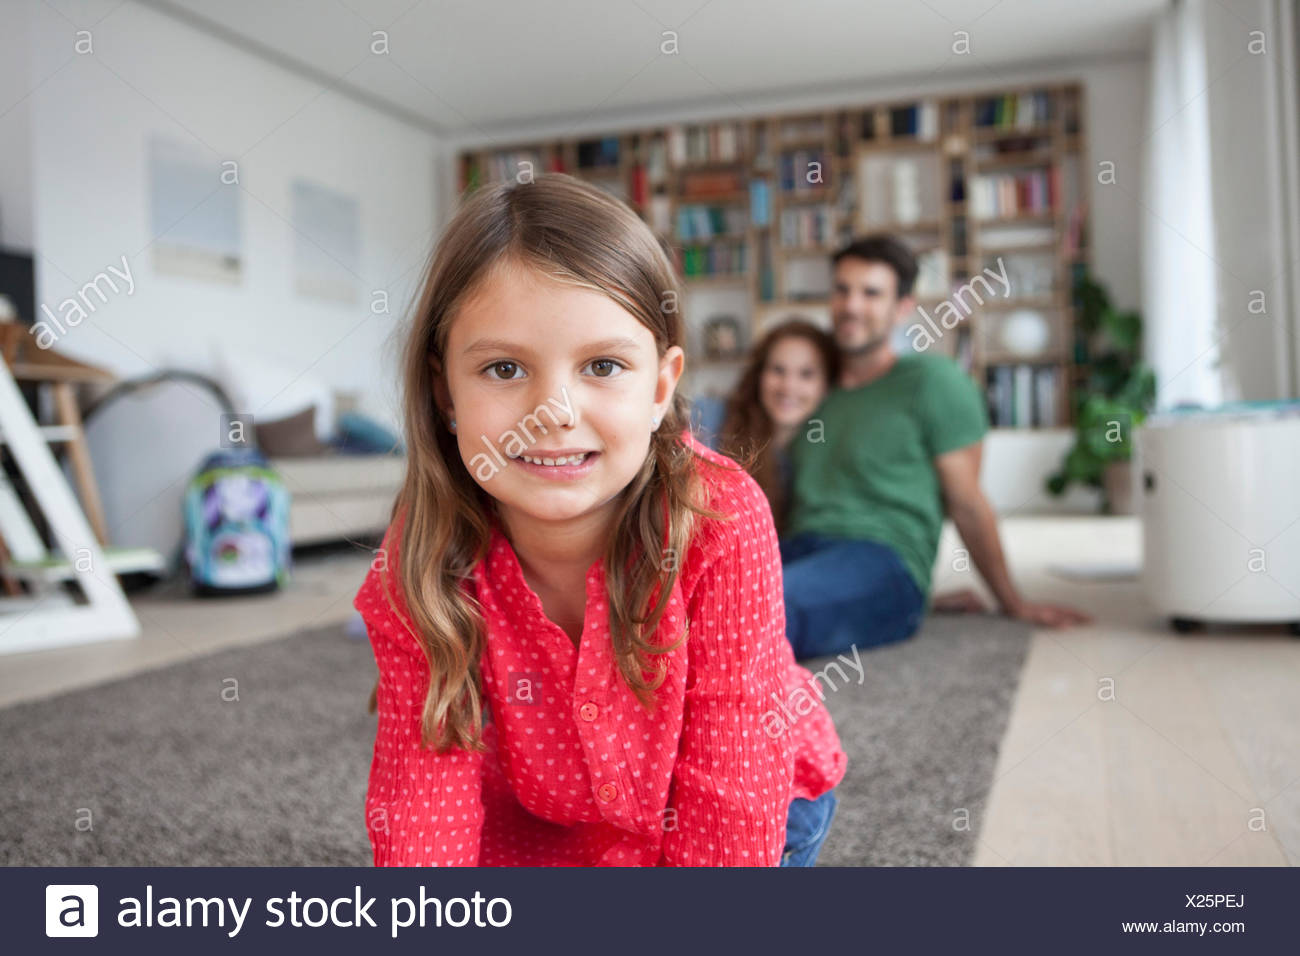 Portrait of smiling little girl and her parents in the background in the  living room - Stock Image